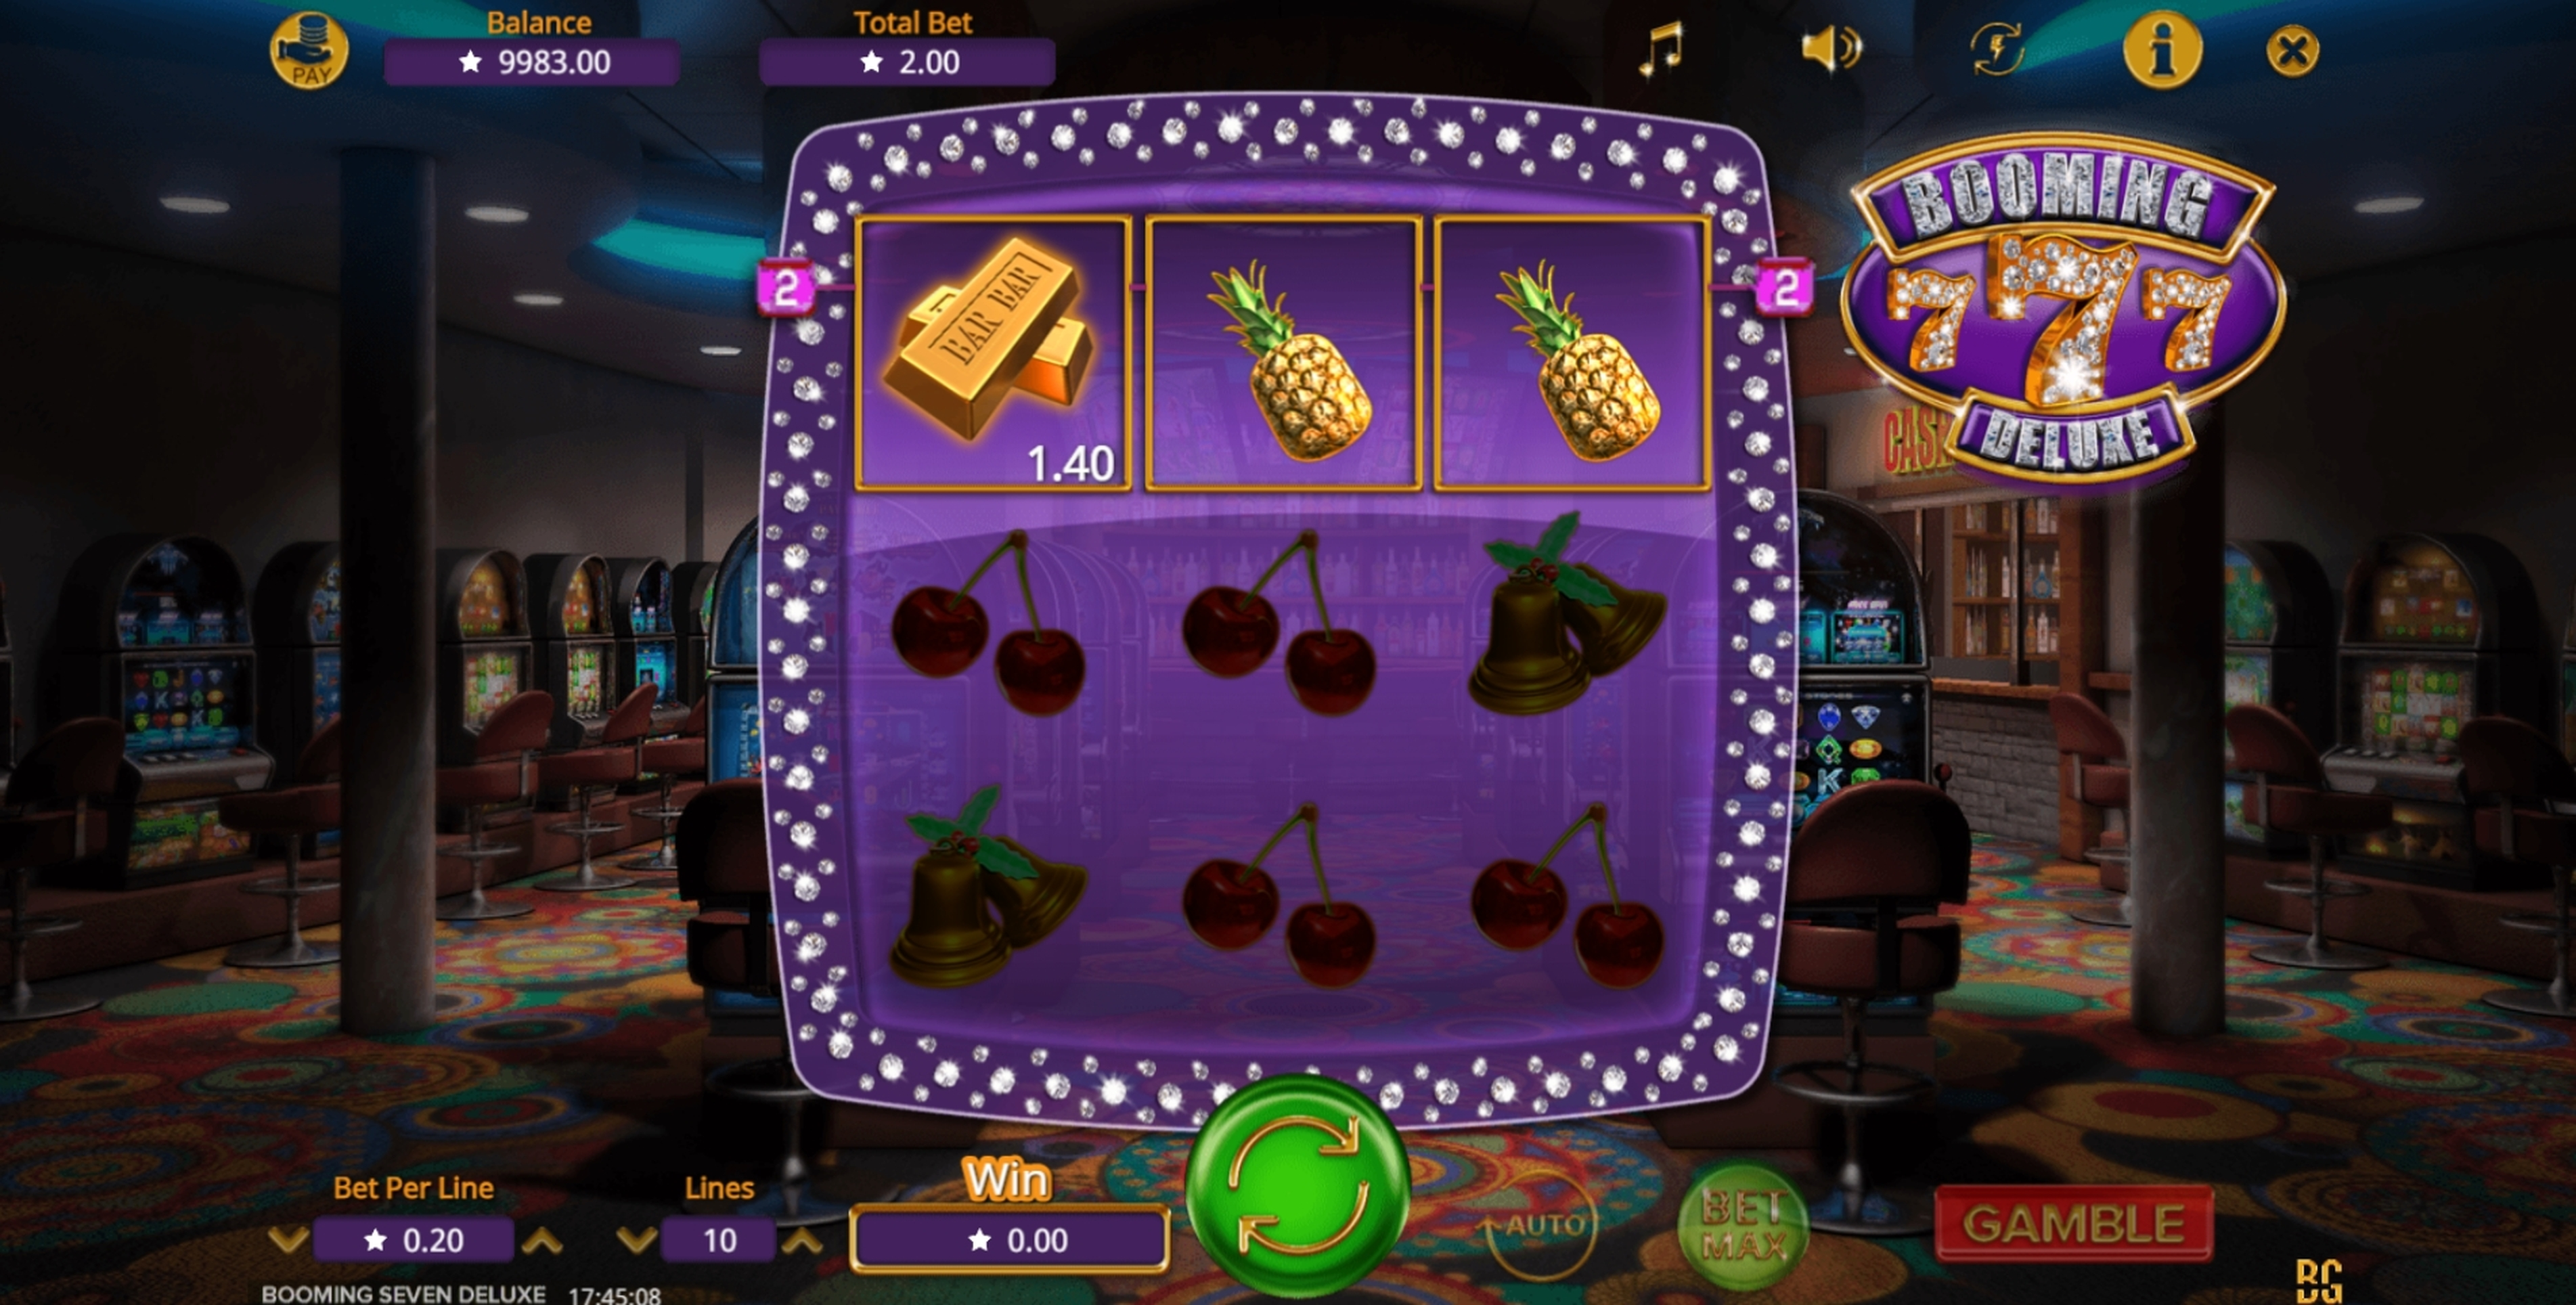 Win Money in Booming Seven Deluxe Free Slot Game by Booming Games